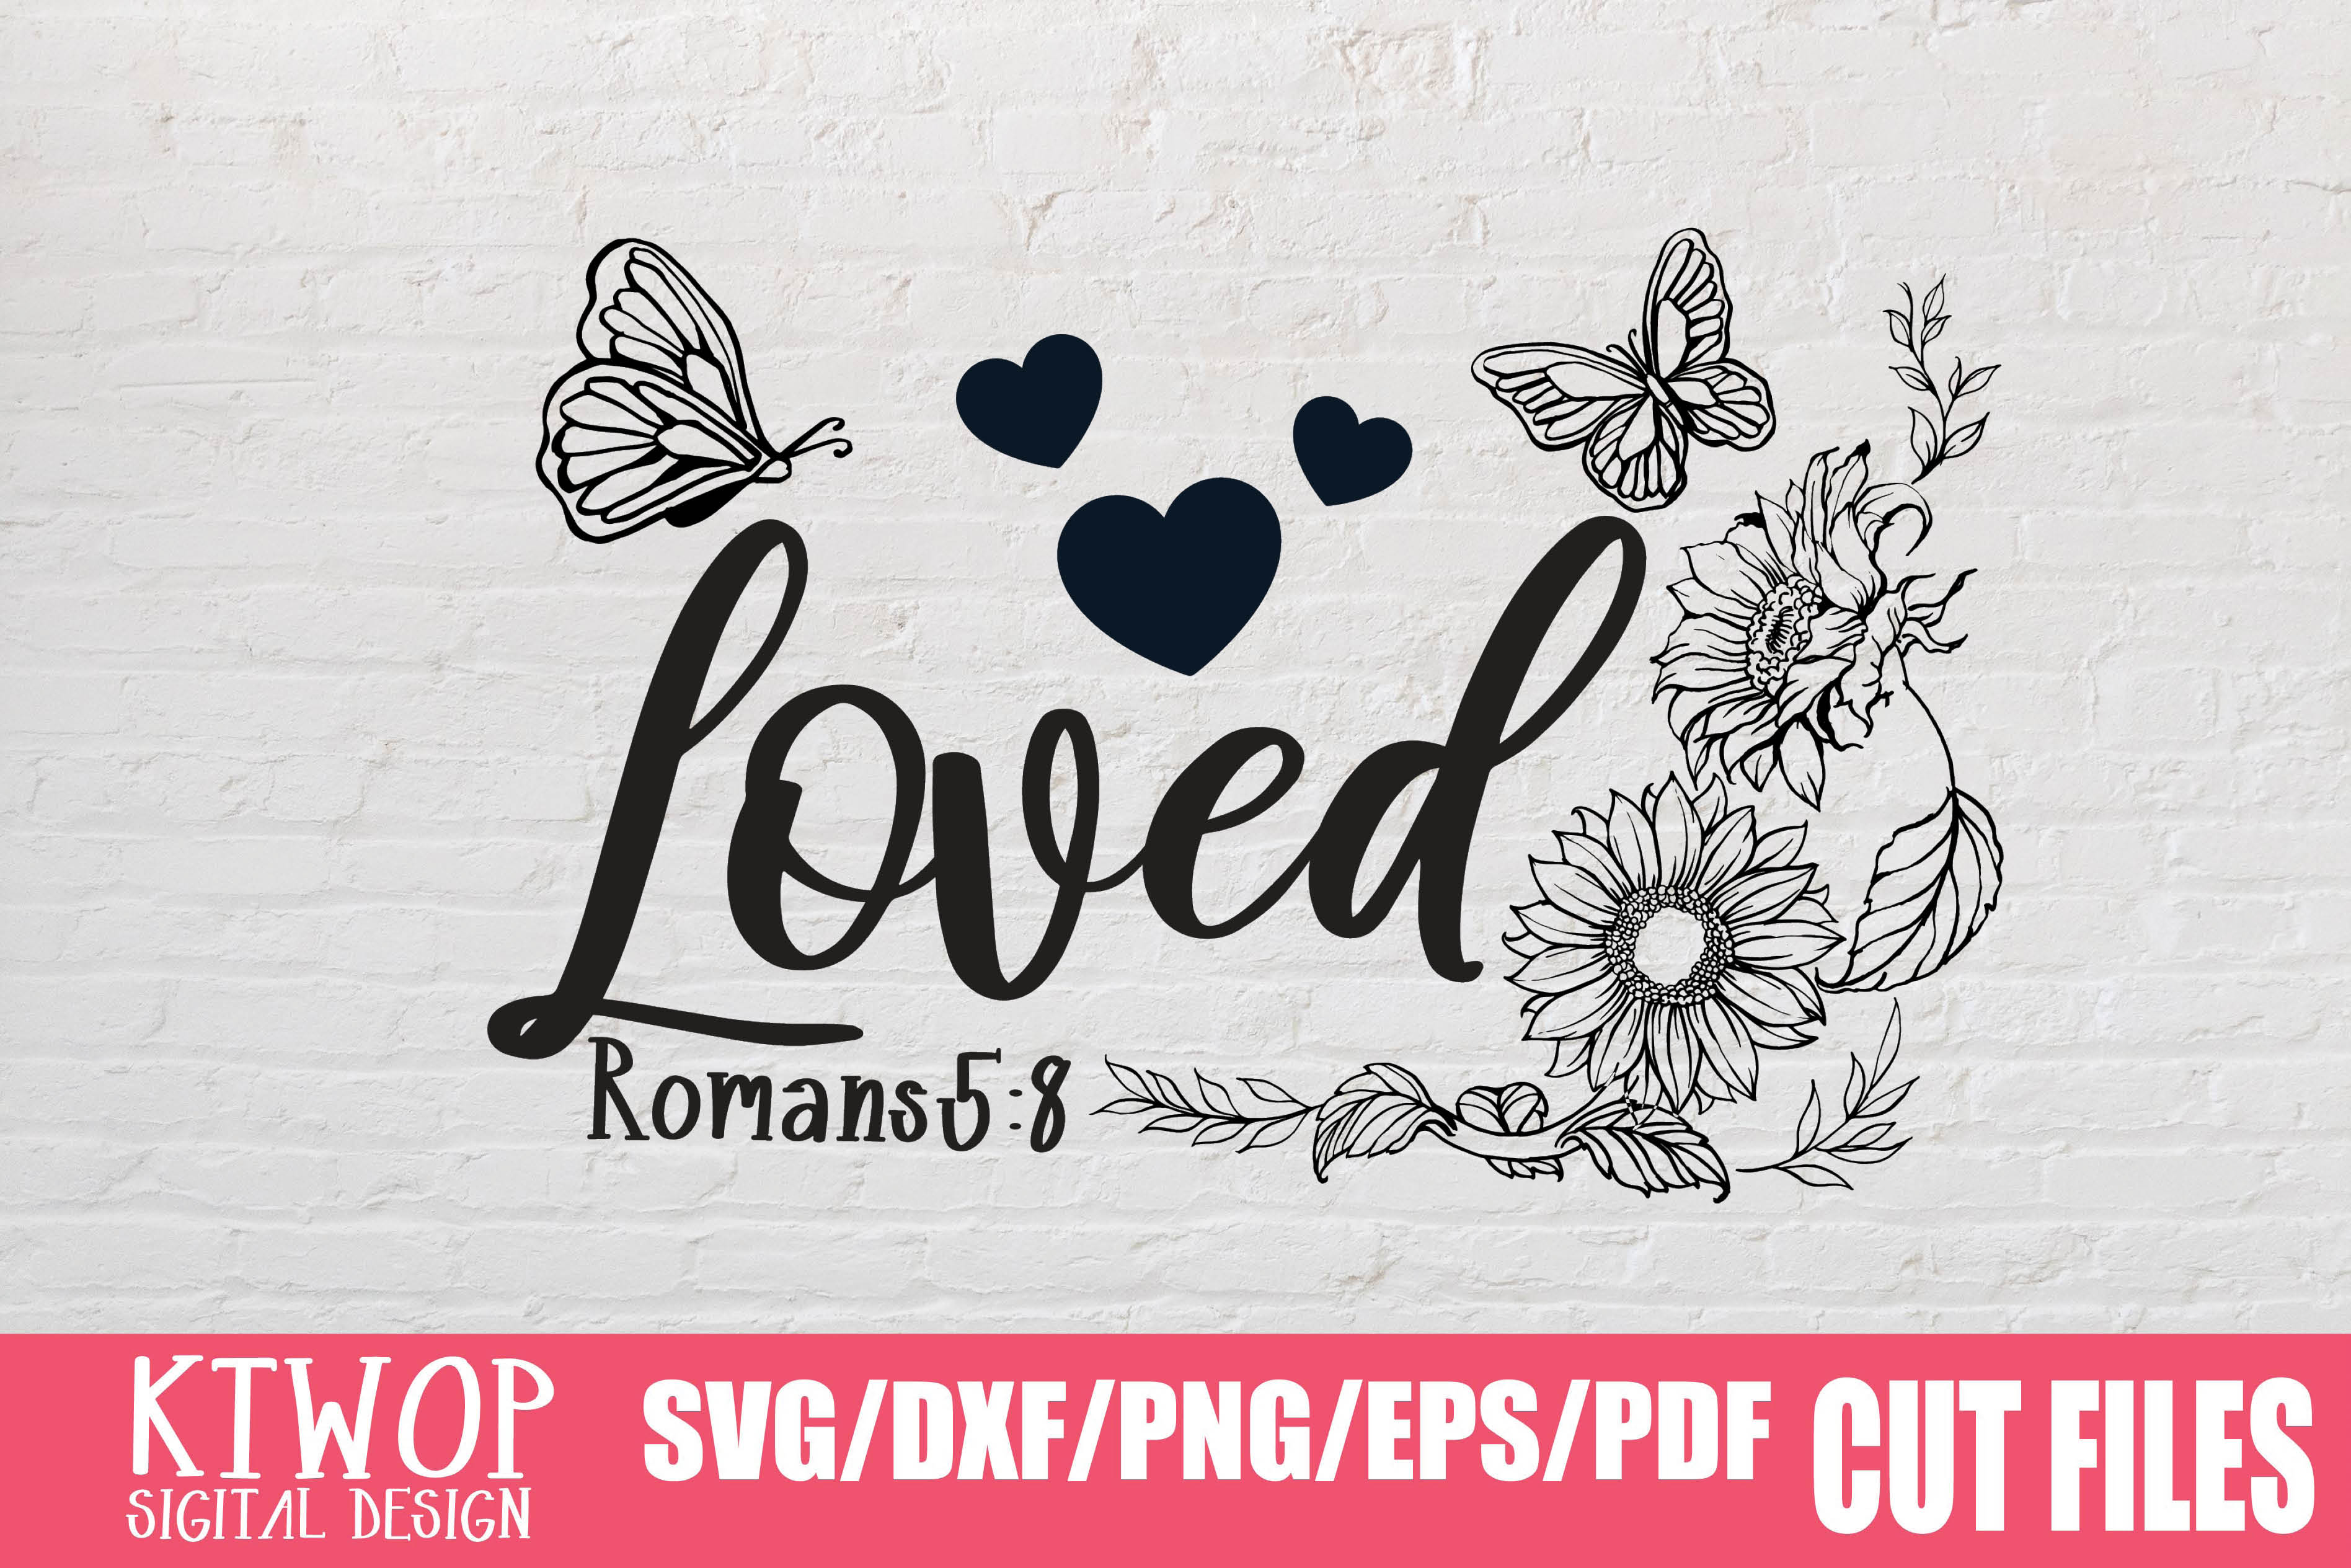 Download Free Loved Graphic By Ktwop Creative Fabrica for Cricut Explore, Silhouette and other cutting machines.